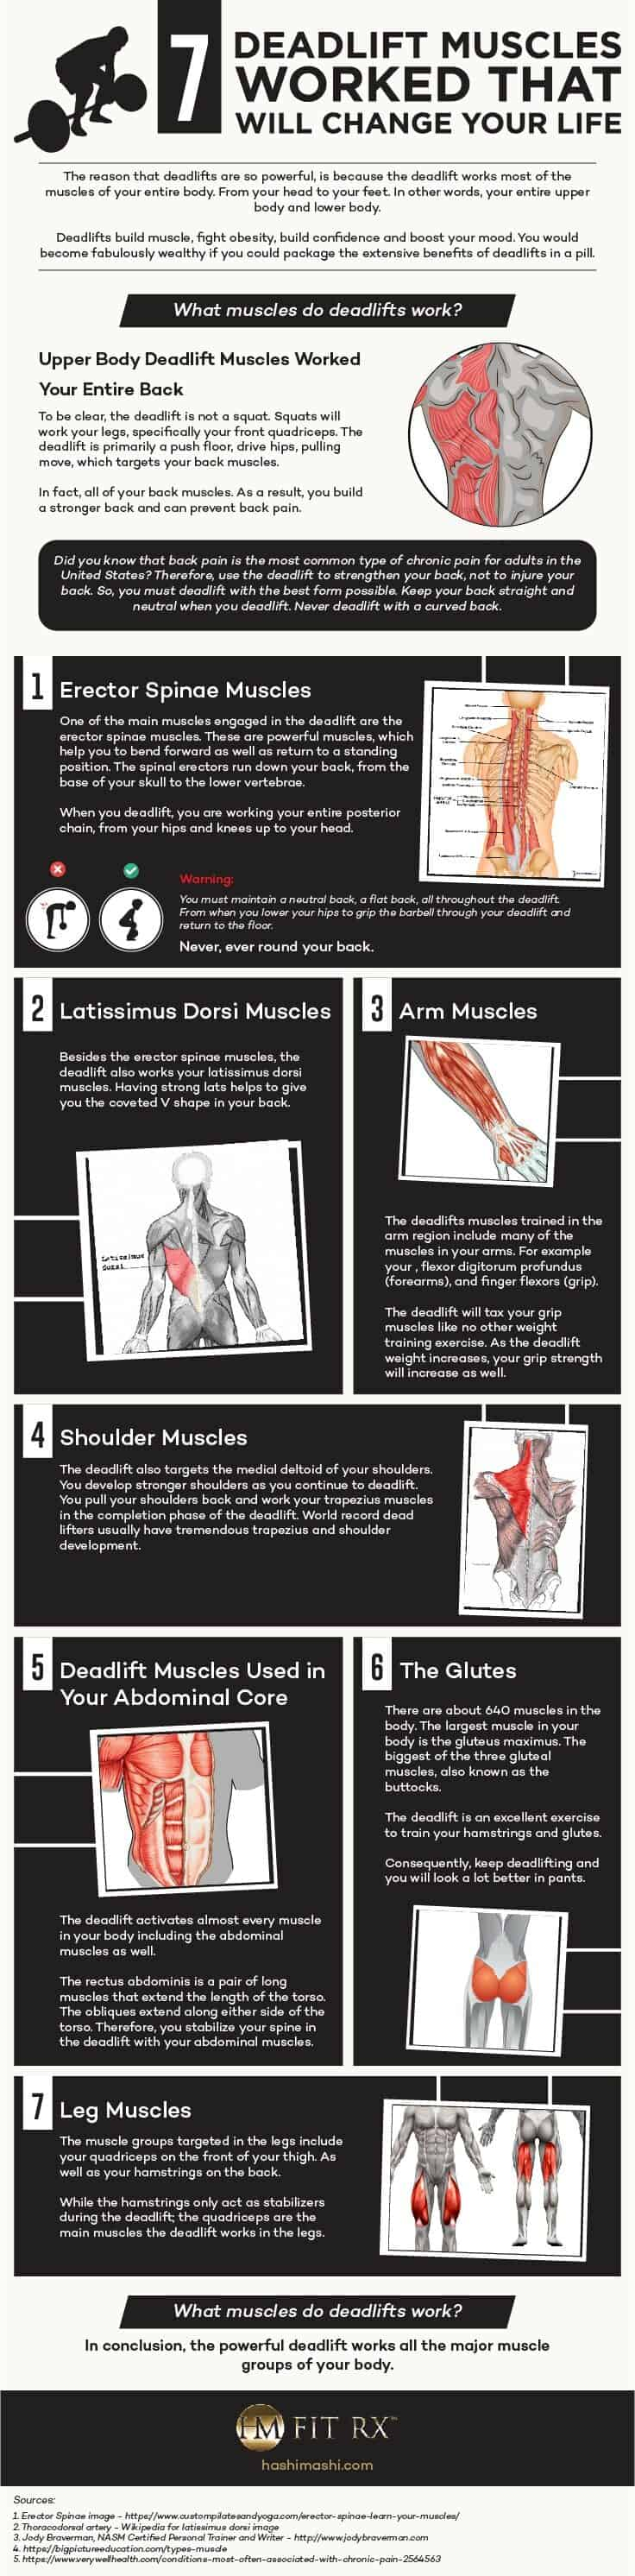 what muscle groups do deadlifts work infographic credit hashimashi.com